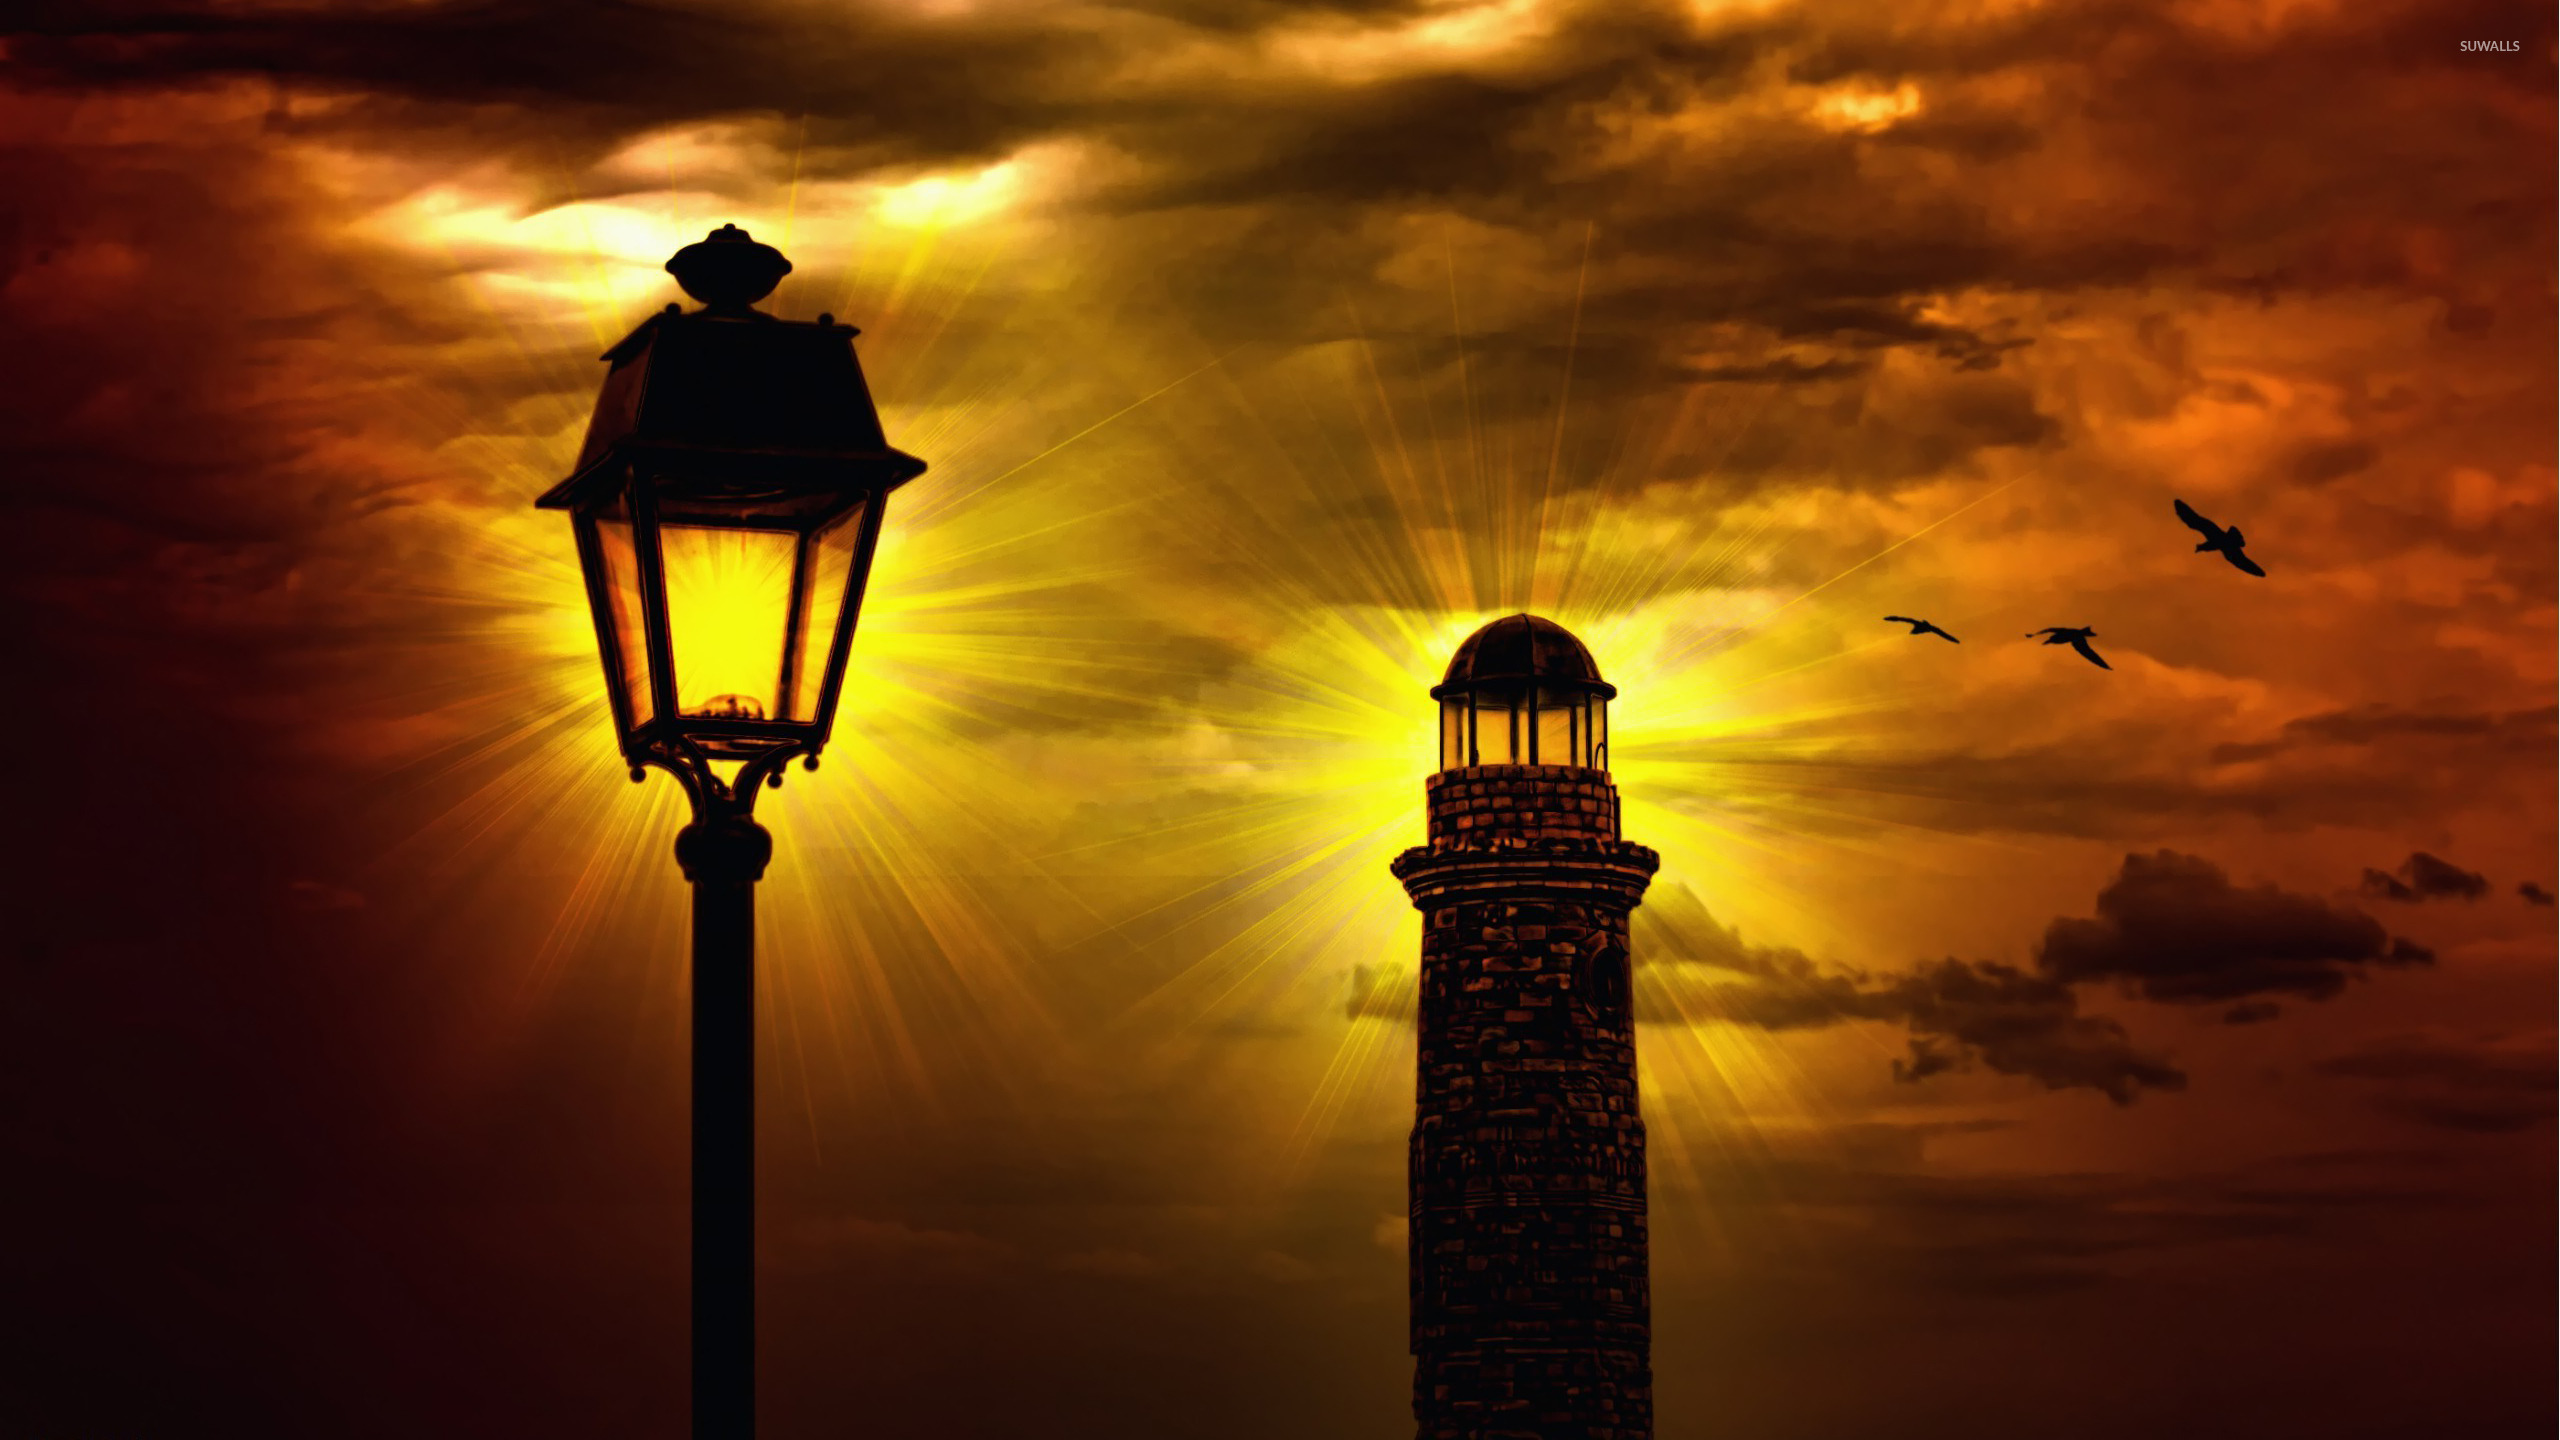 Street Lamp Wallpaper Lighthouse And Street Lamp Wallpaper Artistic Wallpapers